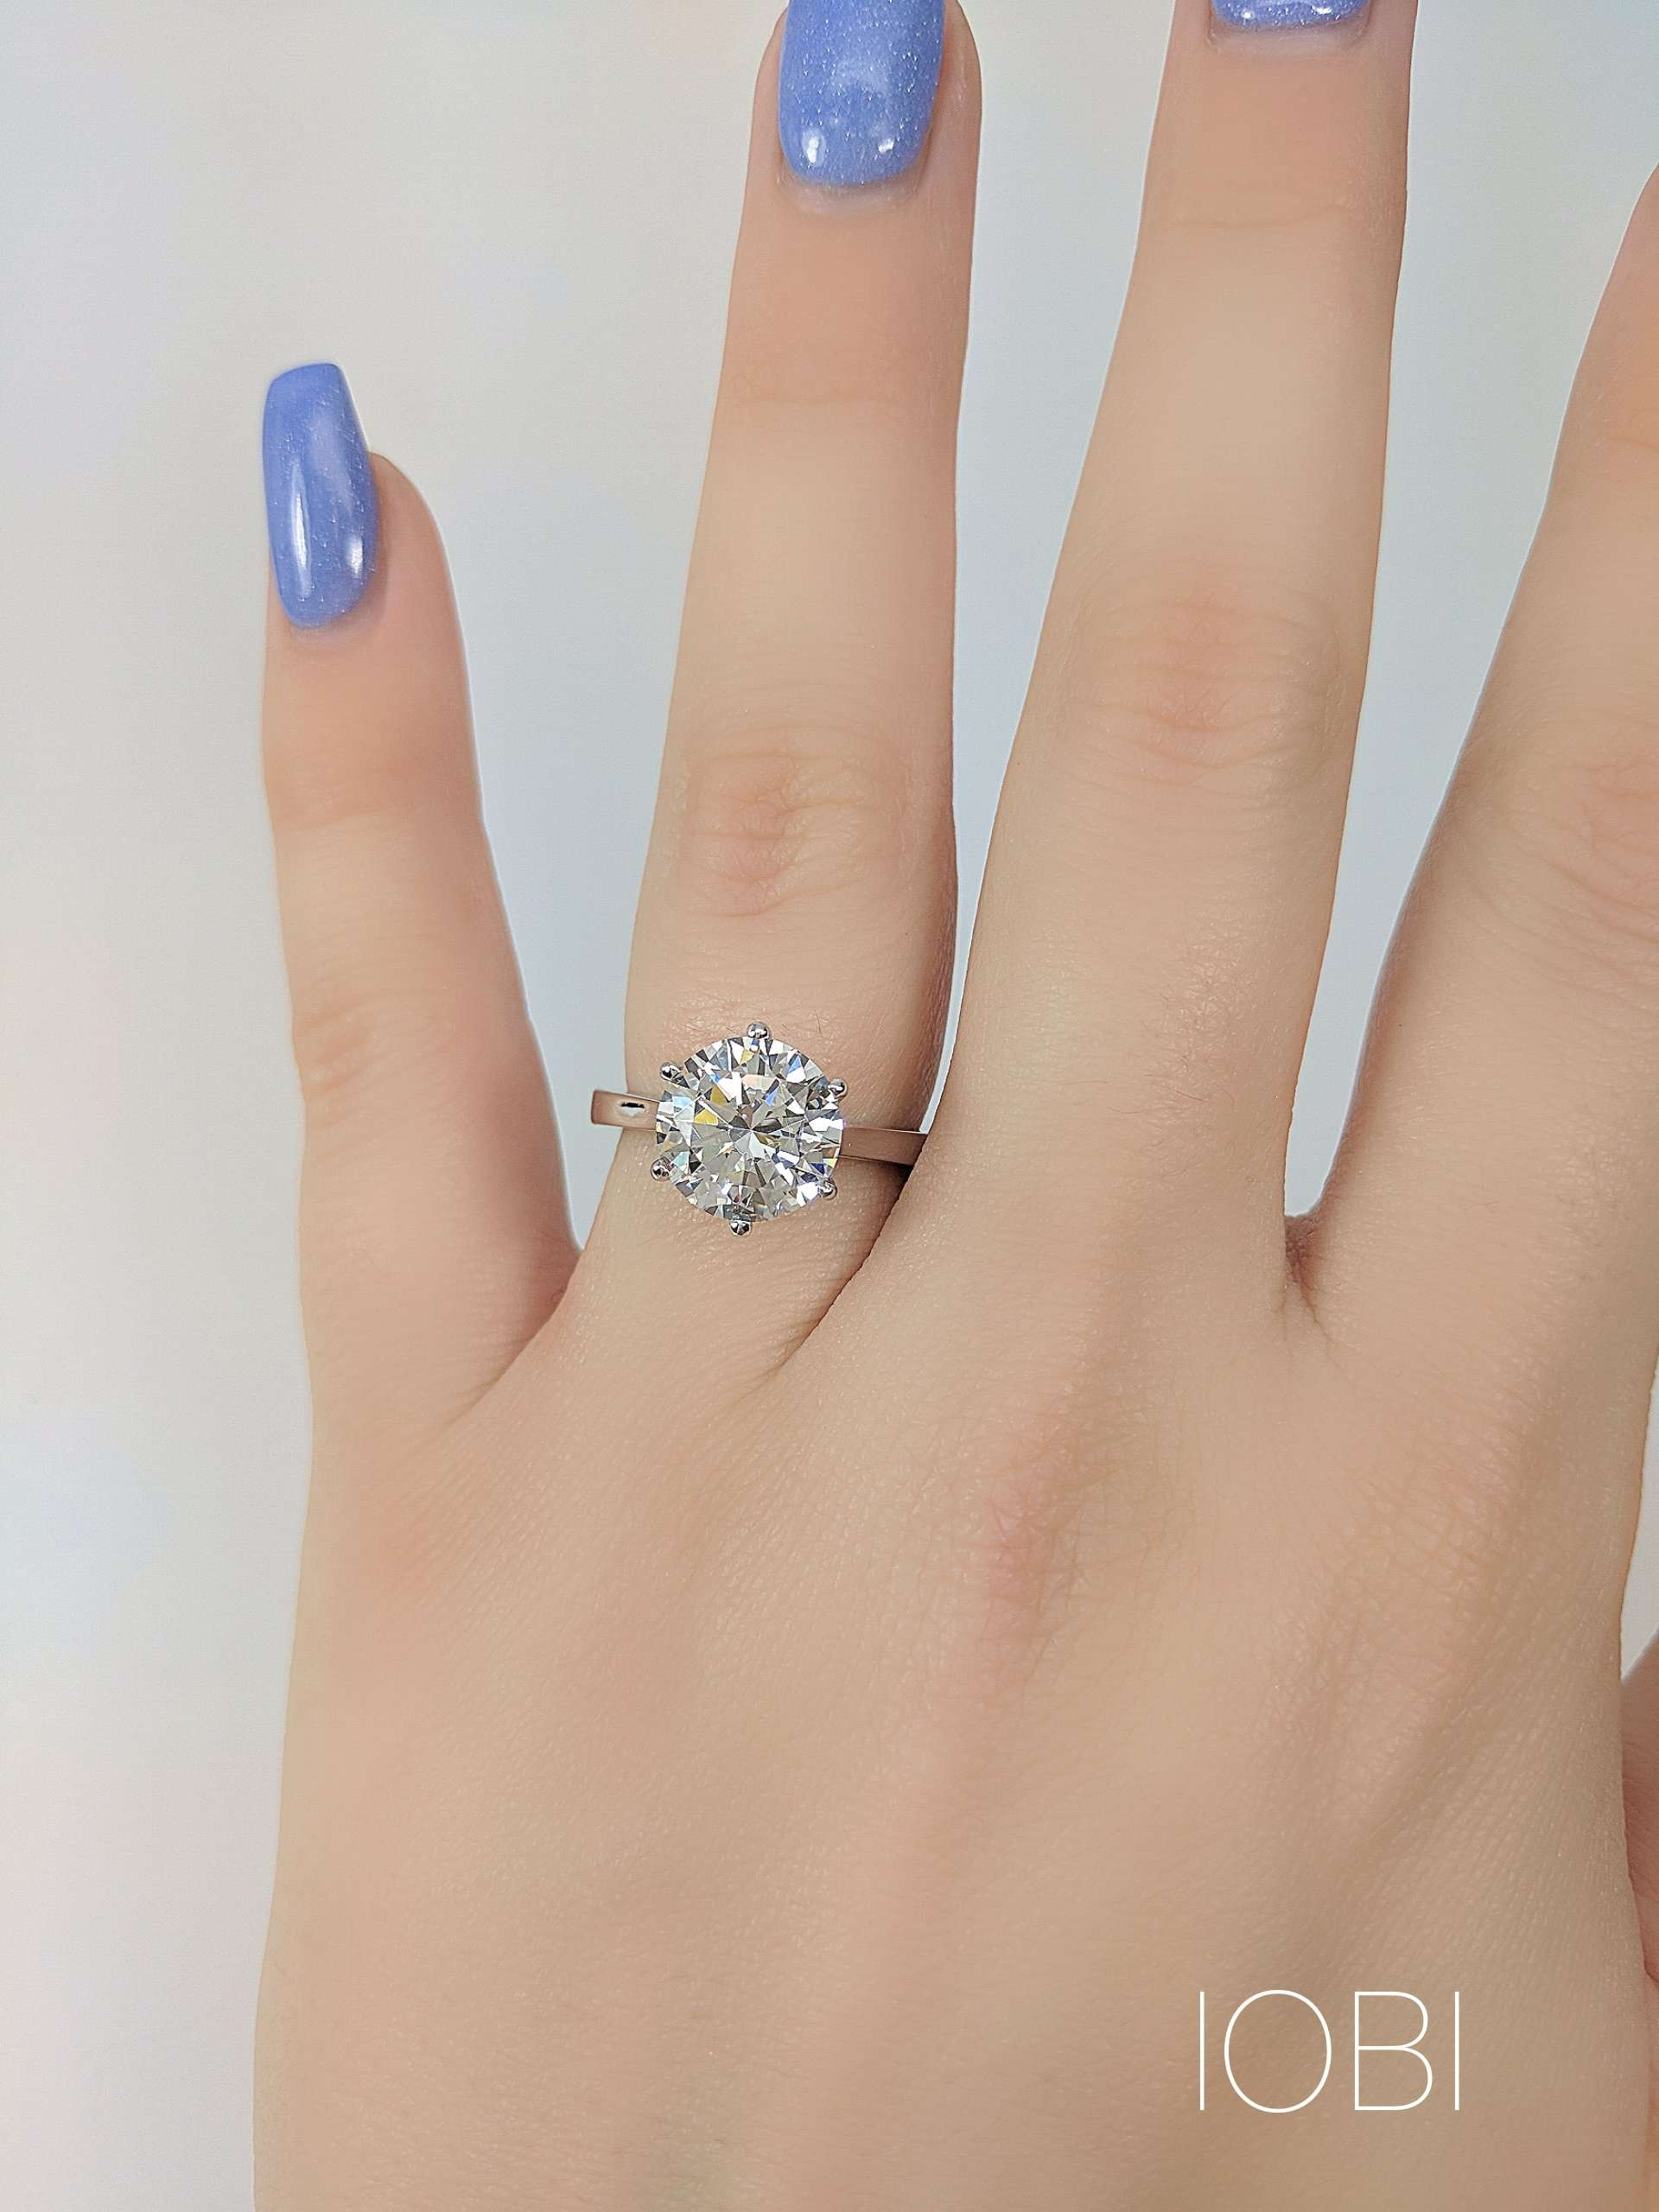 405d02329 ON SALE - Victoria 14K White Gold 4CT Round Cut IOBI Simulated Diamond  Solitaire Ring